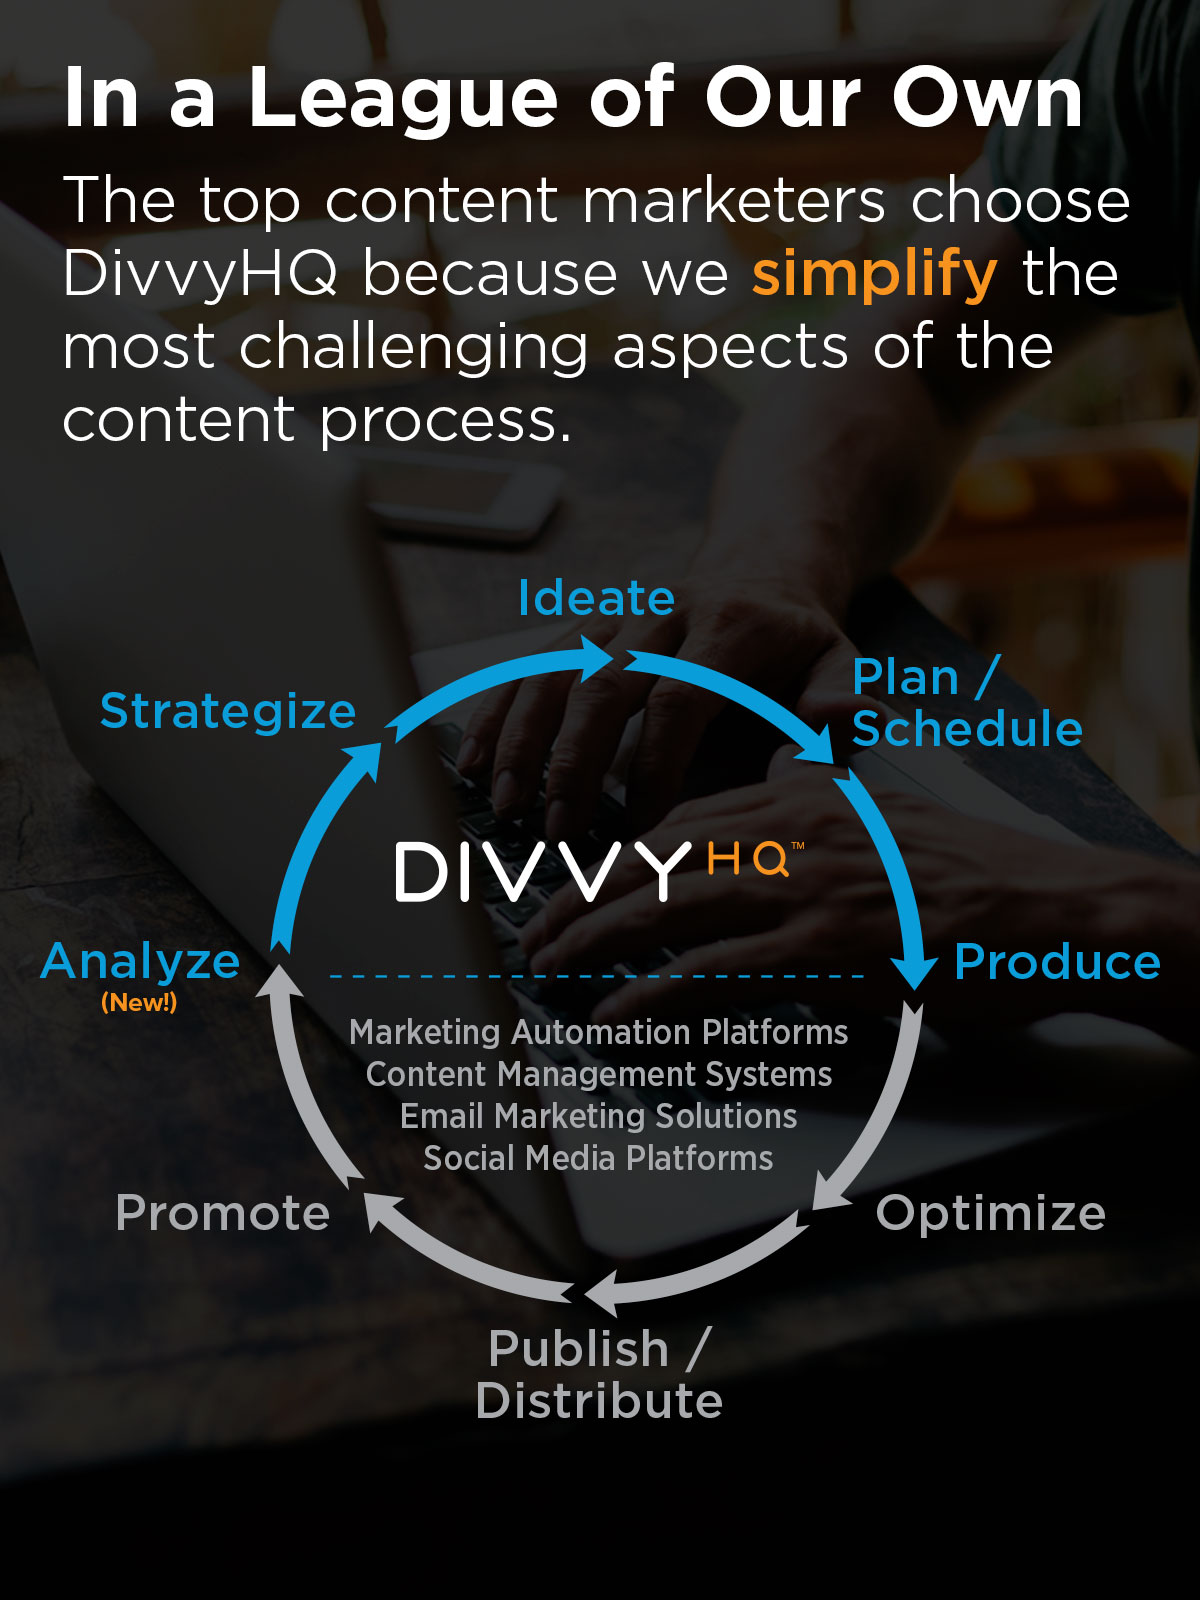 In a League of Our Own. The top content marketers choose DivvyHQ because we simplify the most challenging aspects of the content process.